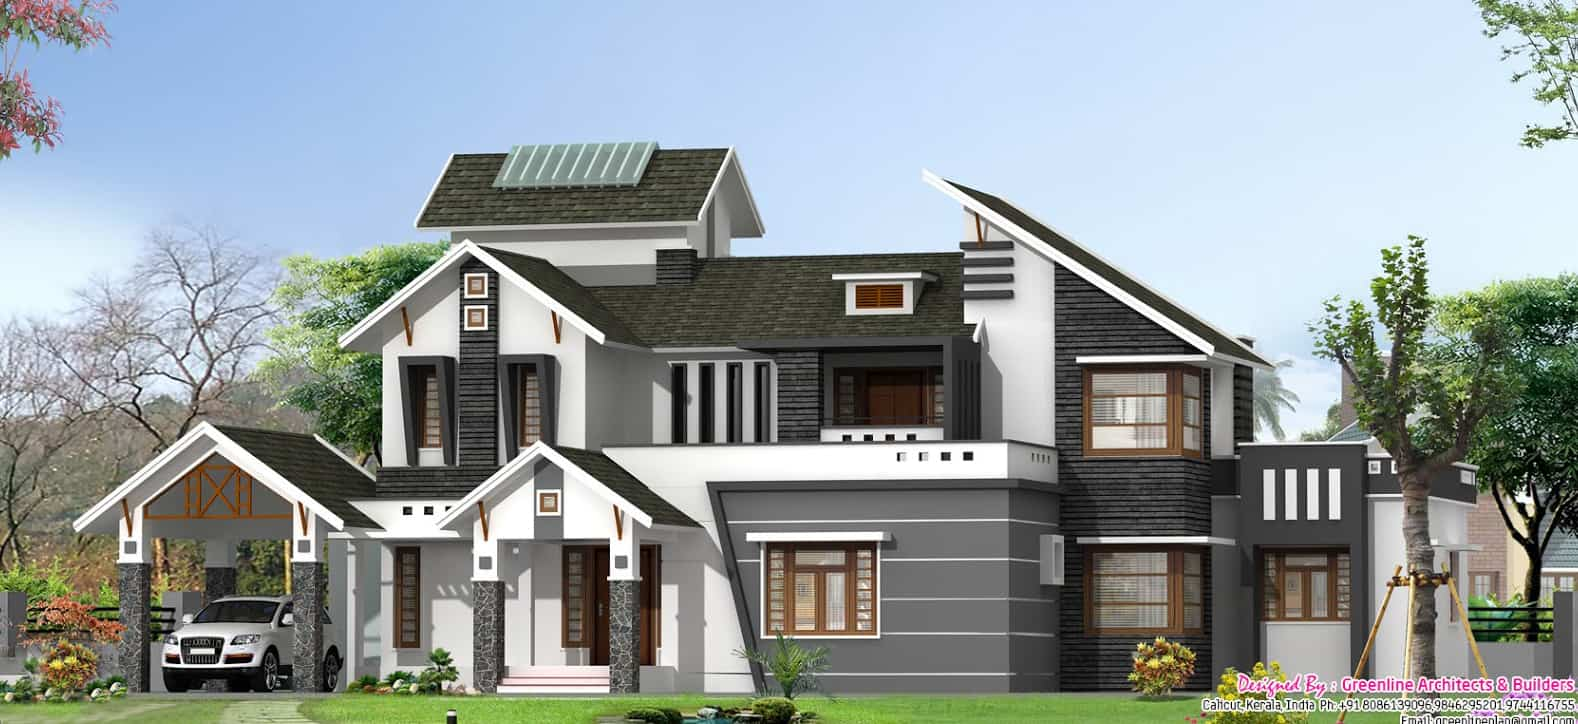 New rends In House Plans Kerala - rts - ^